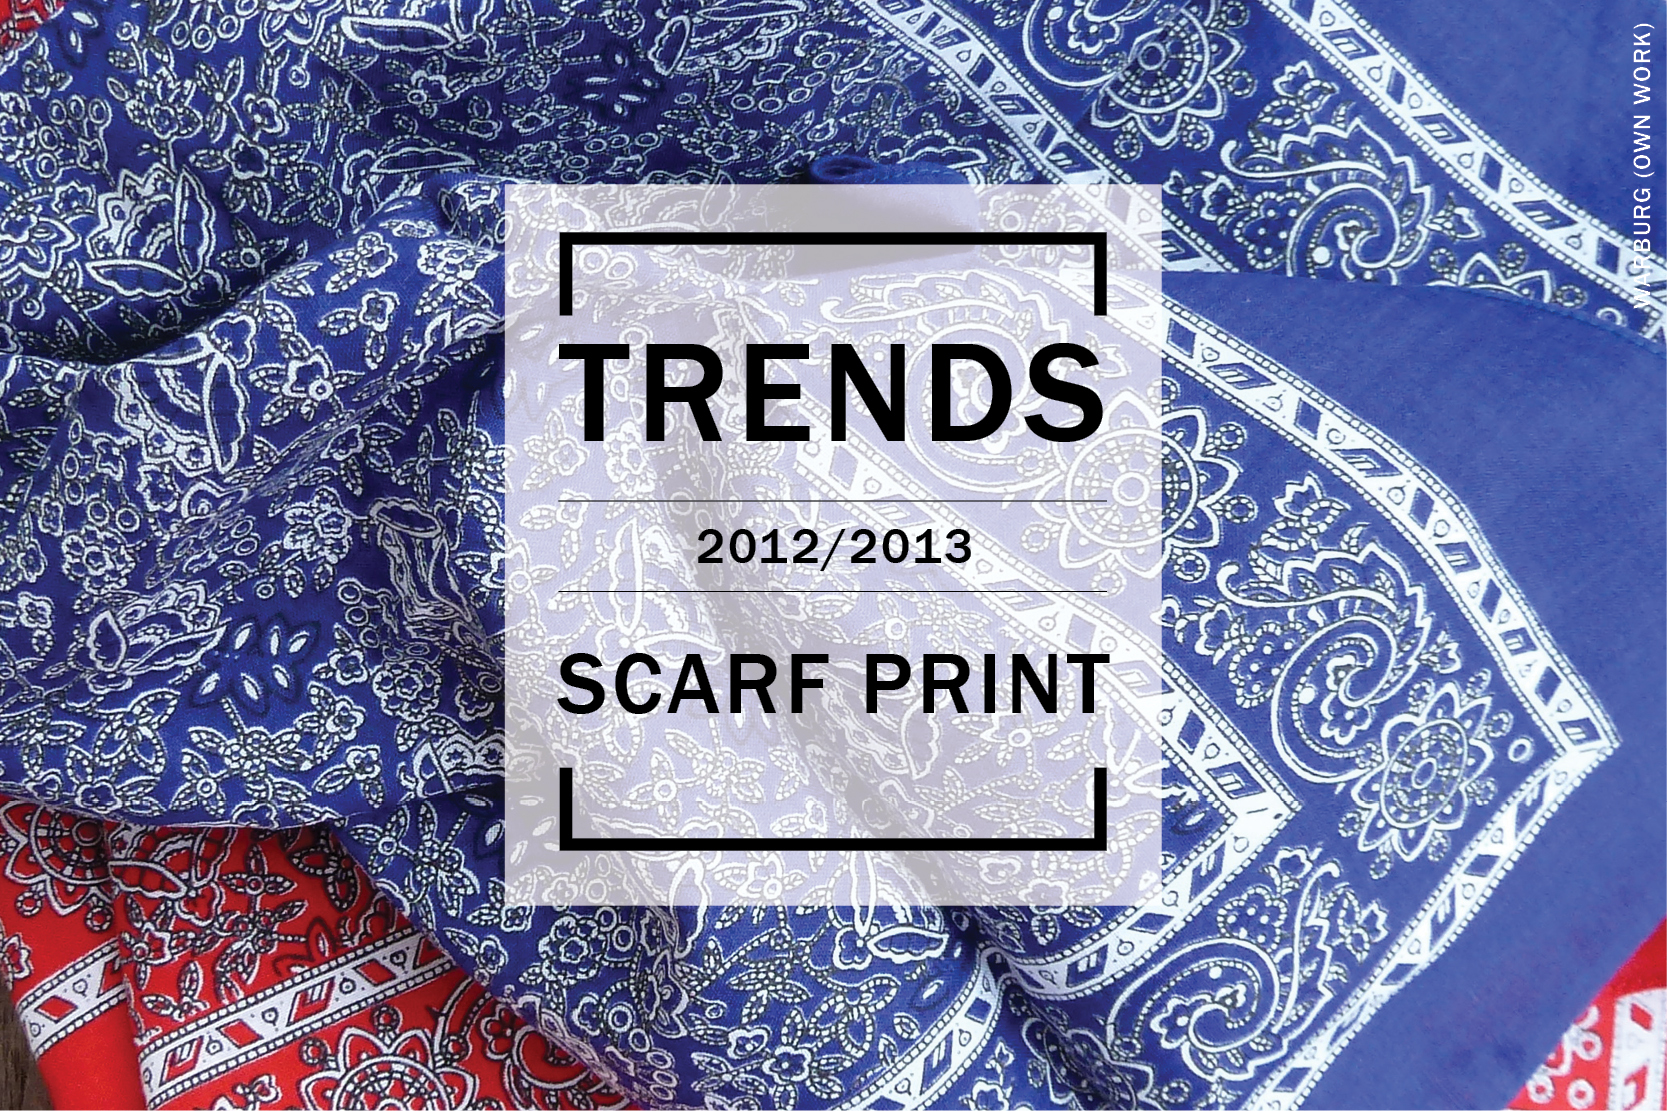 Trends - Scarf print